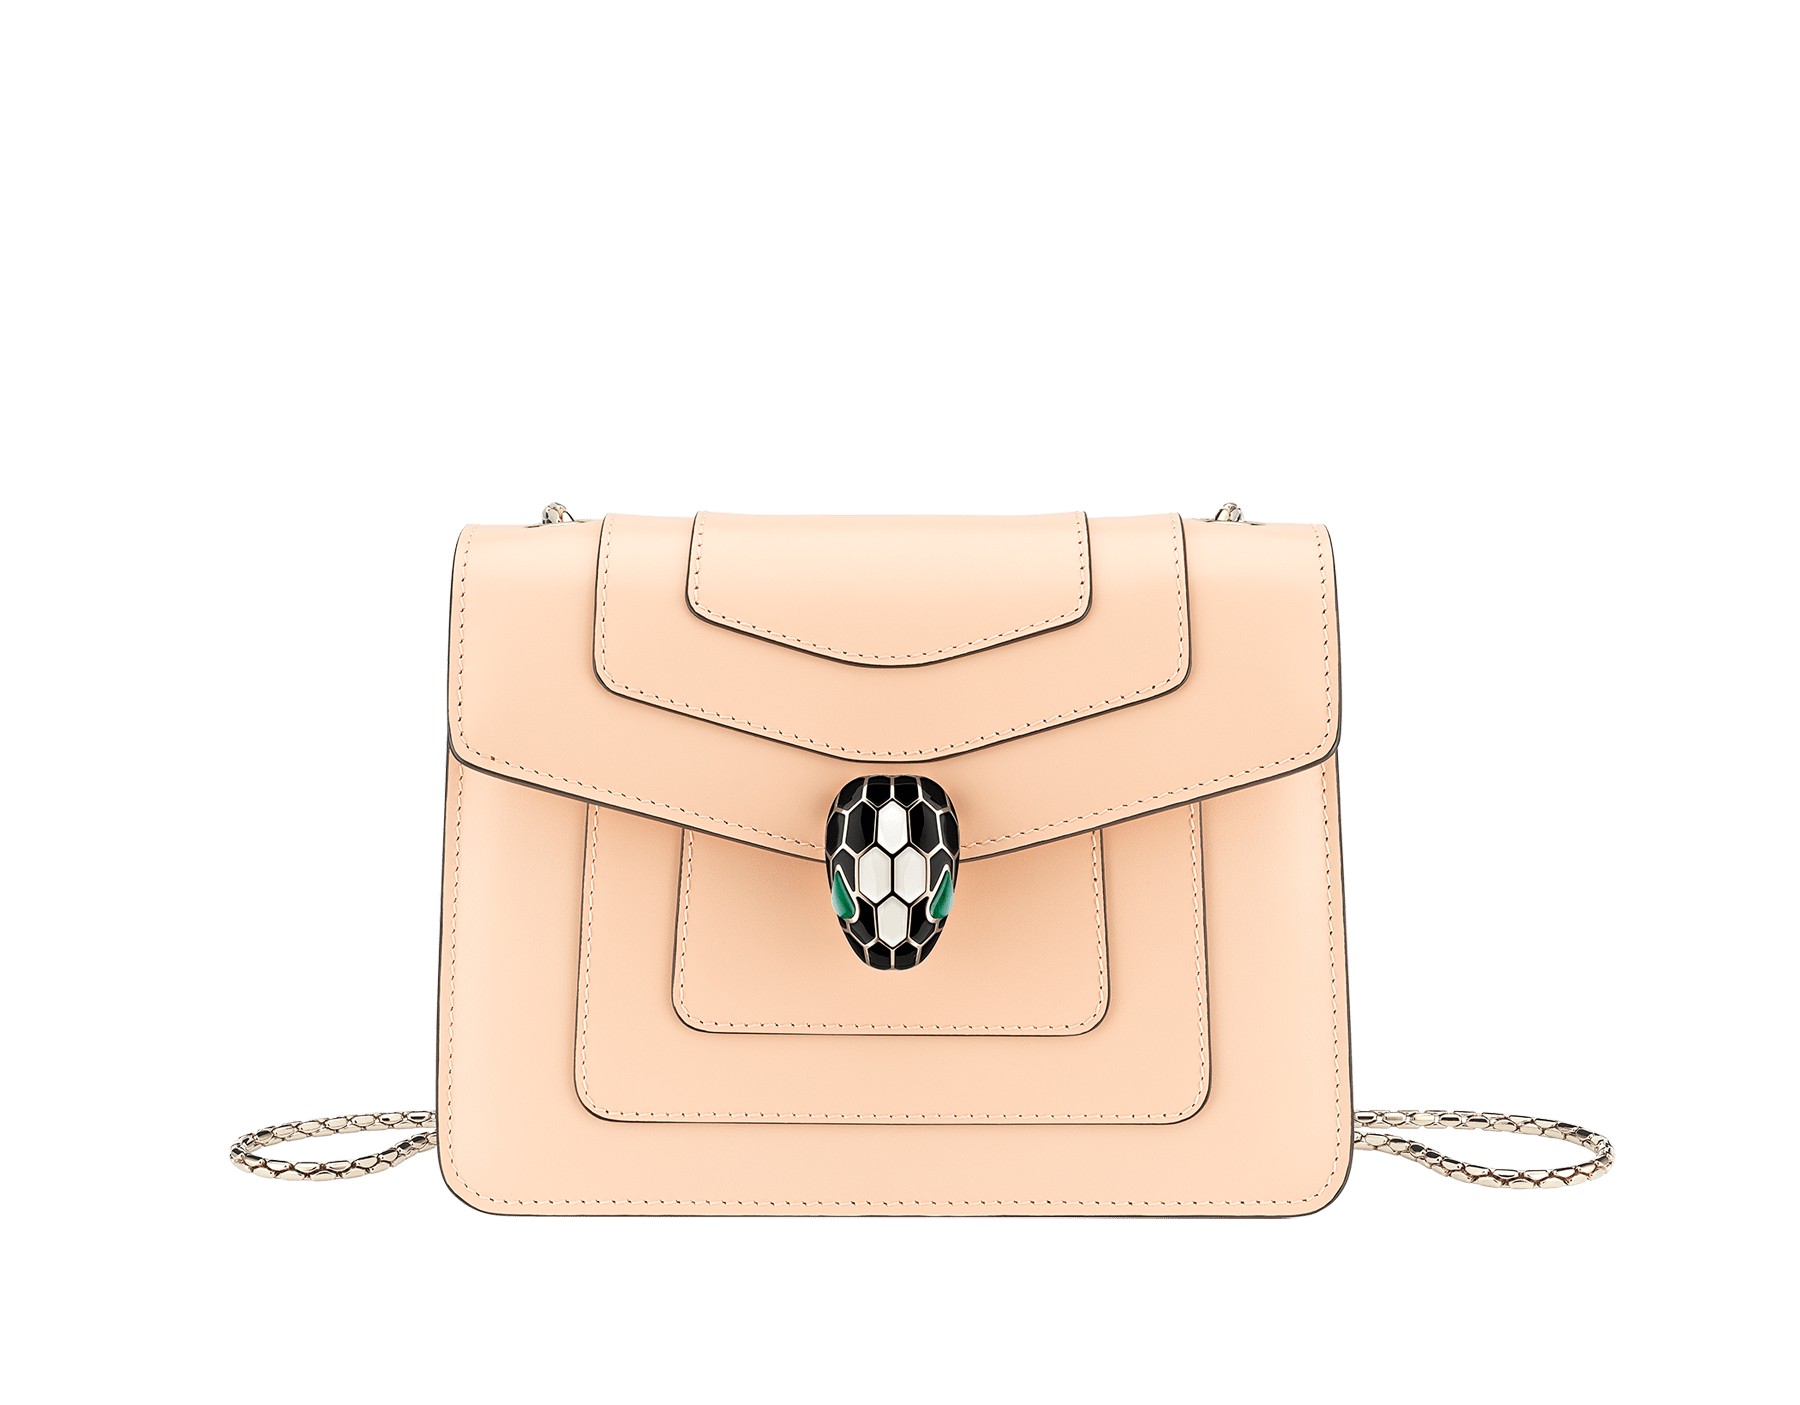 """Serpenti Forever"" crossbody bag in peach calf leather with Pink Spinel fuchsia gros grain internal lining. Iconic snakehead closure in light gold plated brass enriched with black and white agate enamel and green malachite eyes. 422-CLc image 1"